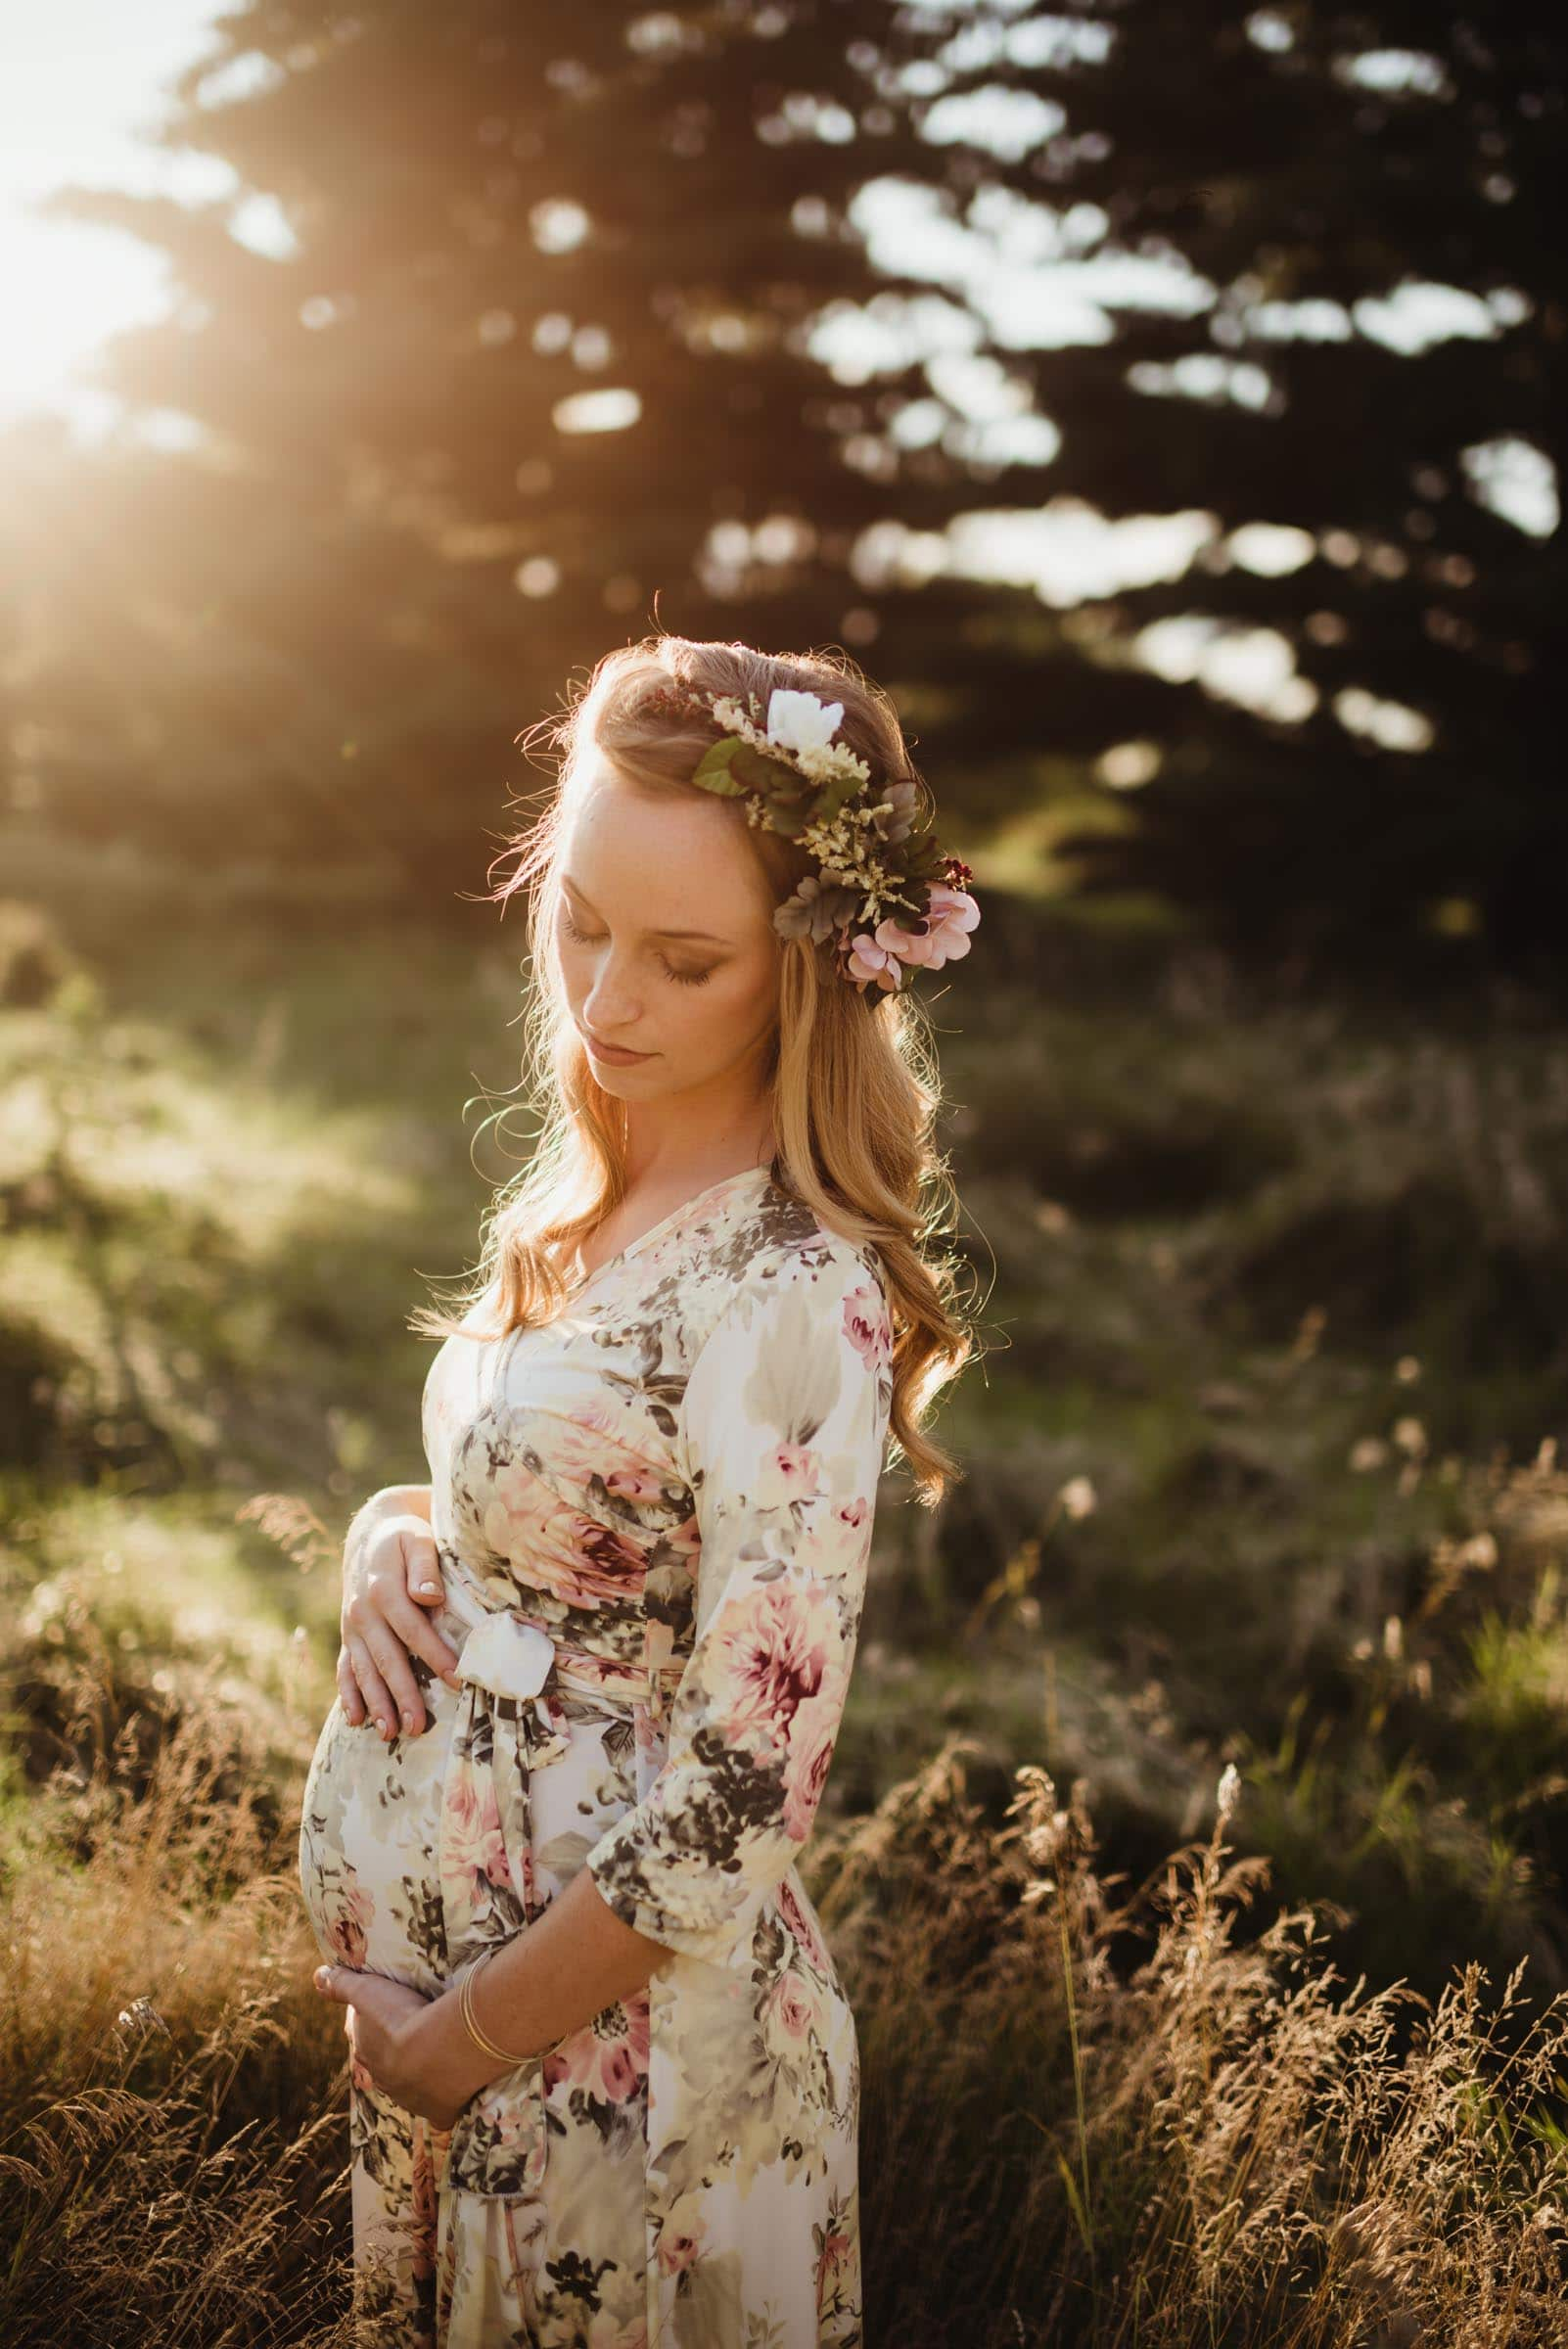 Pregnant Woman in Floral Crown at Sunset